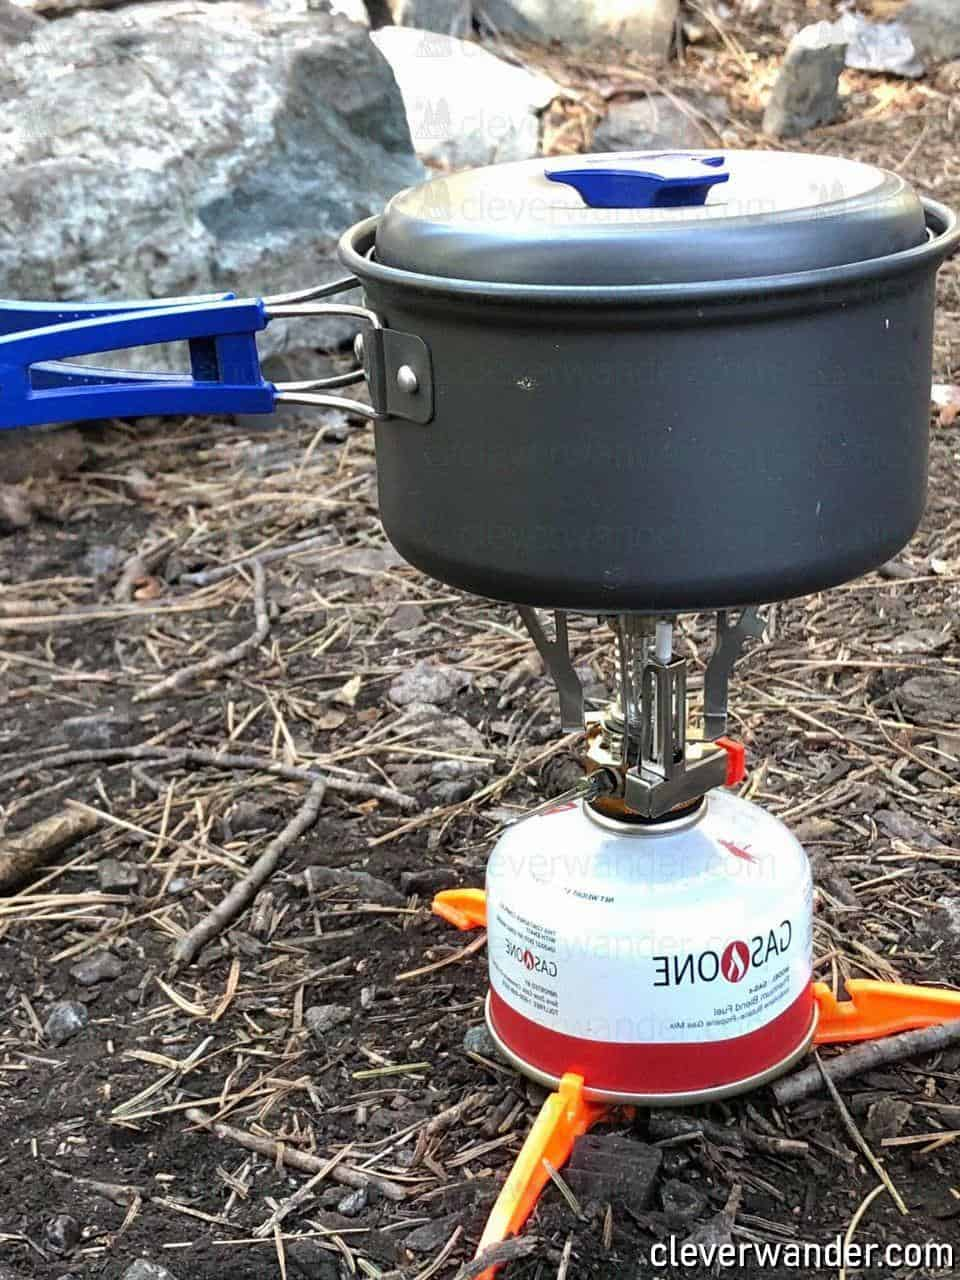 Bisgear Camping Cookware Stove - image review 4